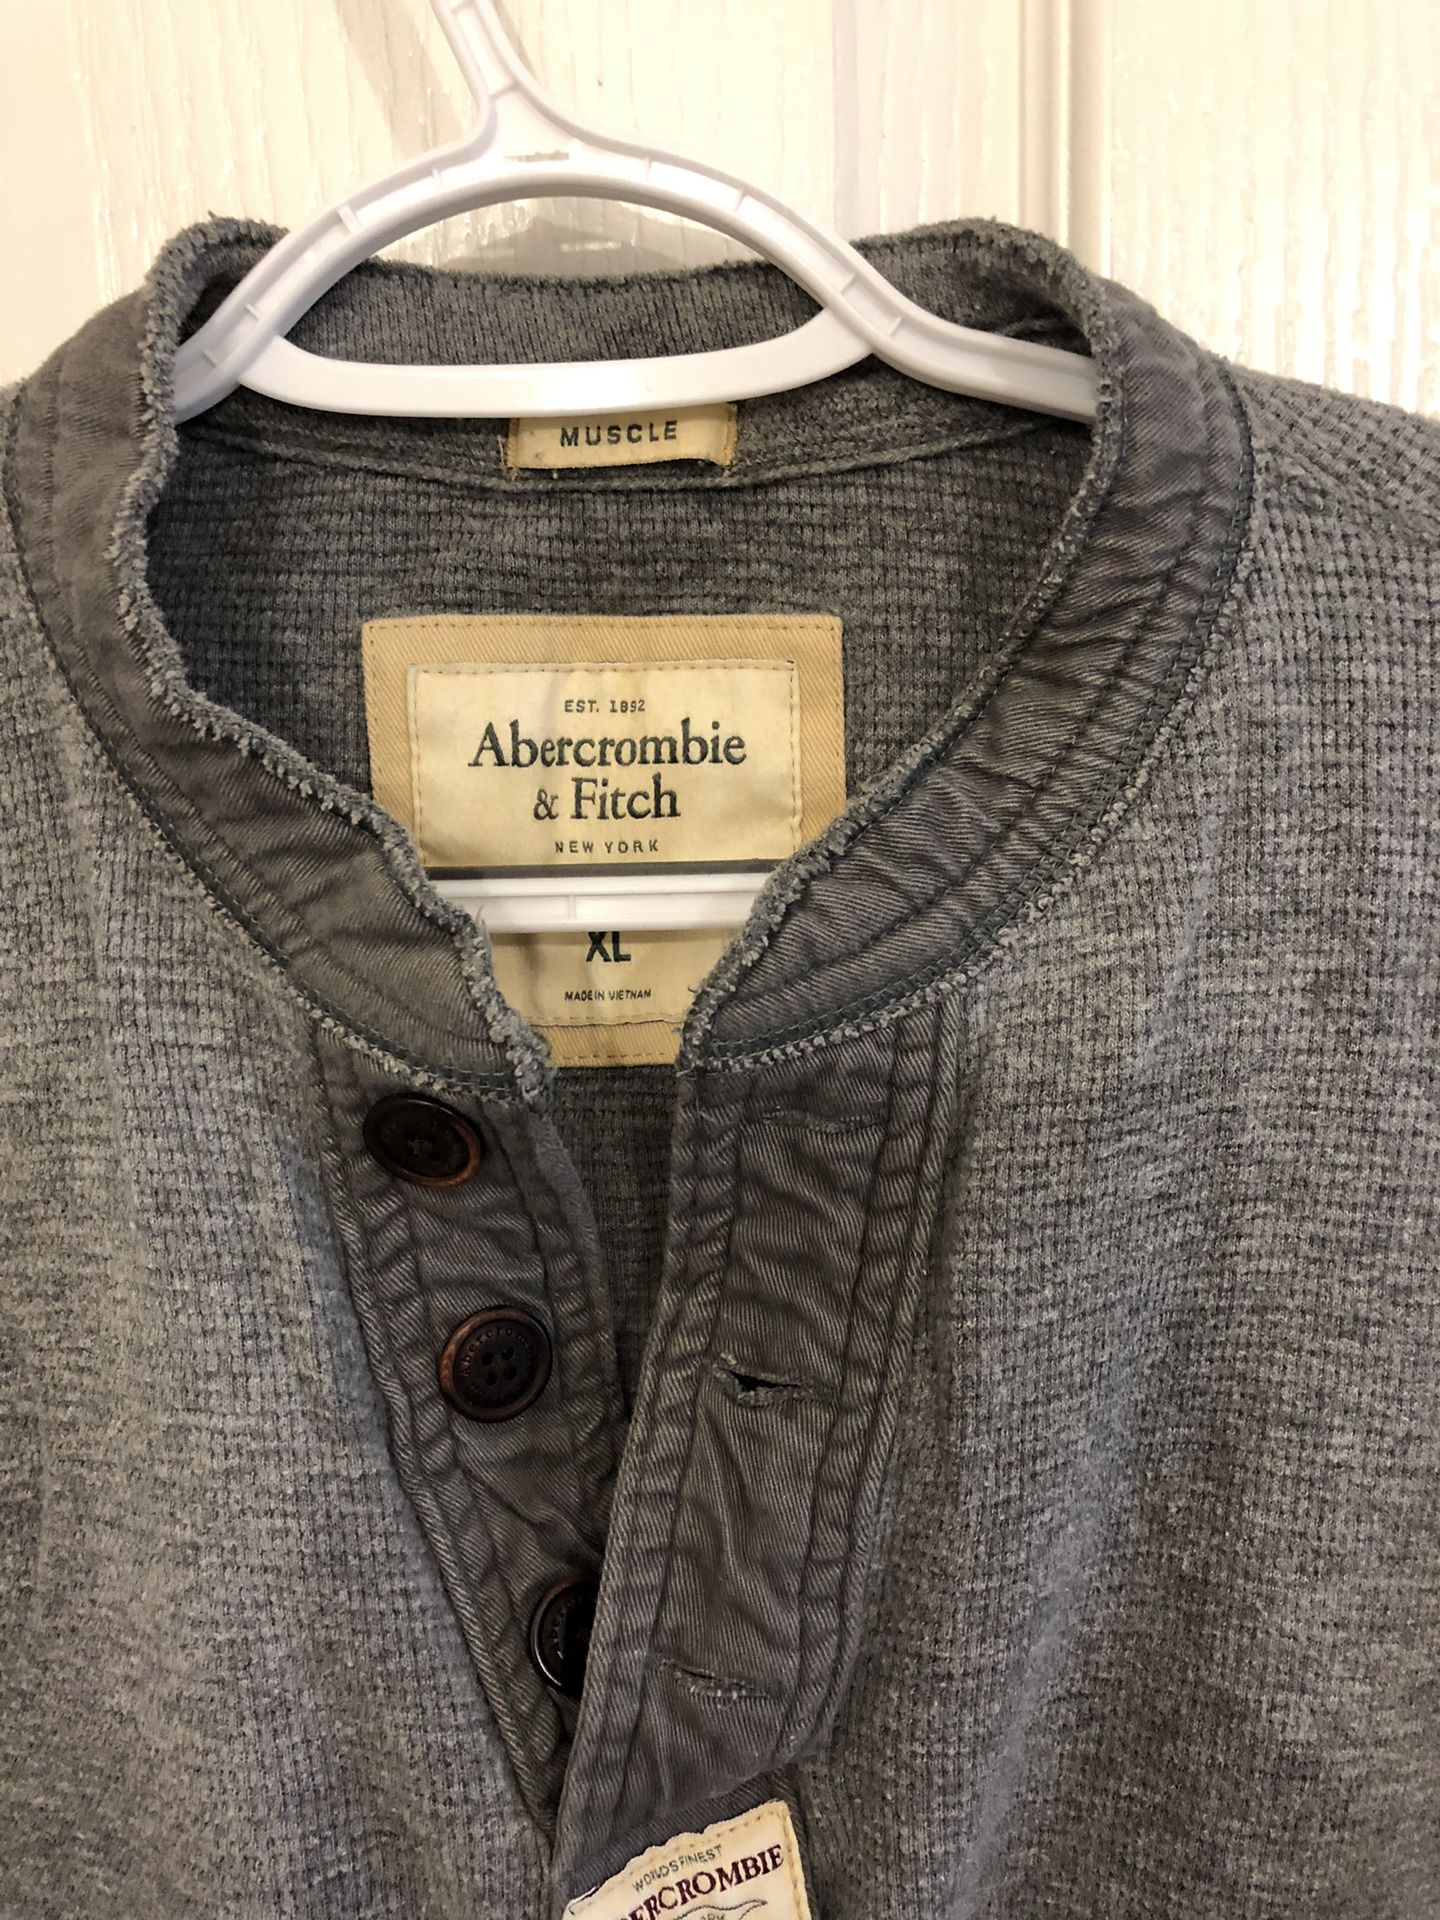 Jackets and sweaters for men